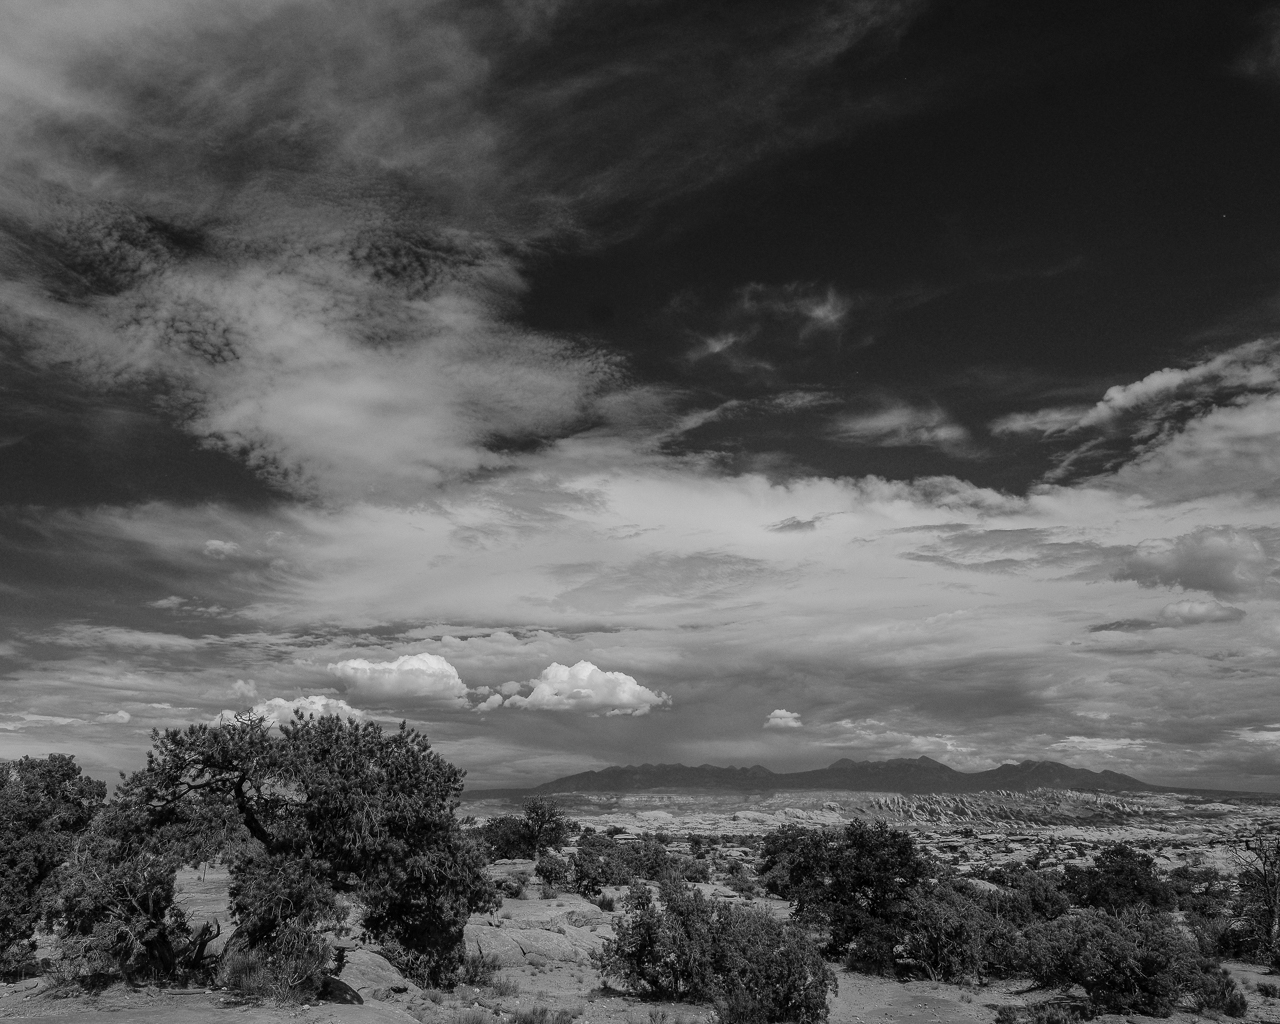 Day 214 - 365 Day B&W Photo Challenge - The late afternoon storm clouds beging to form over the desert. - Fuji X-T3, XF 14mm f/2.8, Acros  R Film Simulation